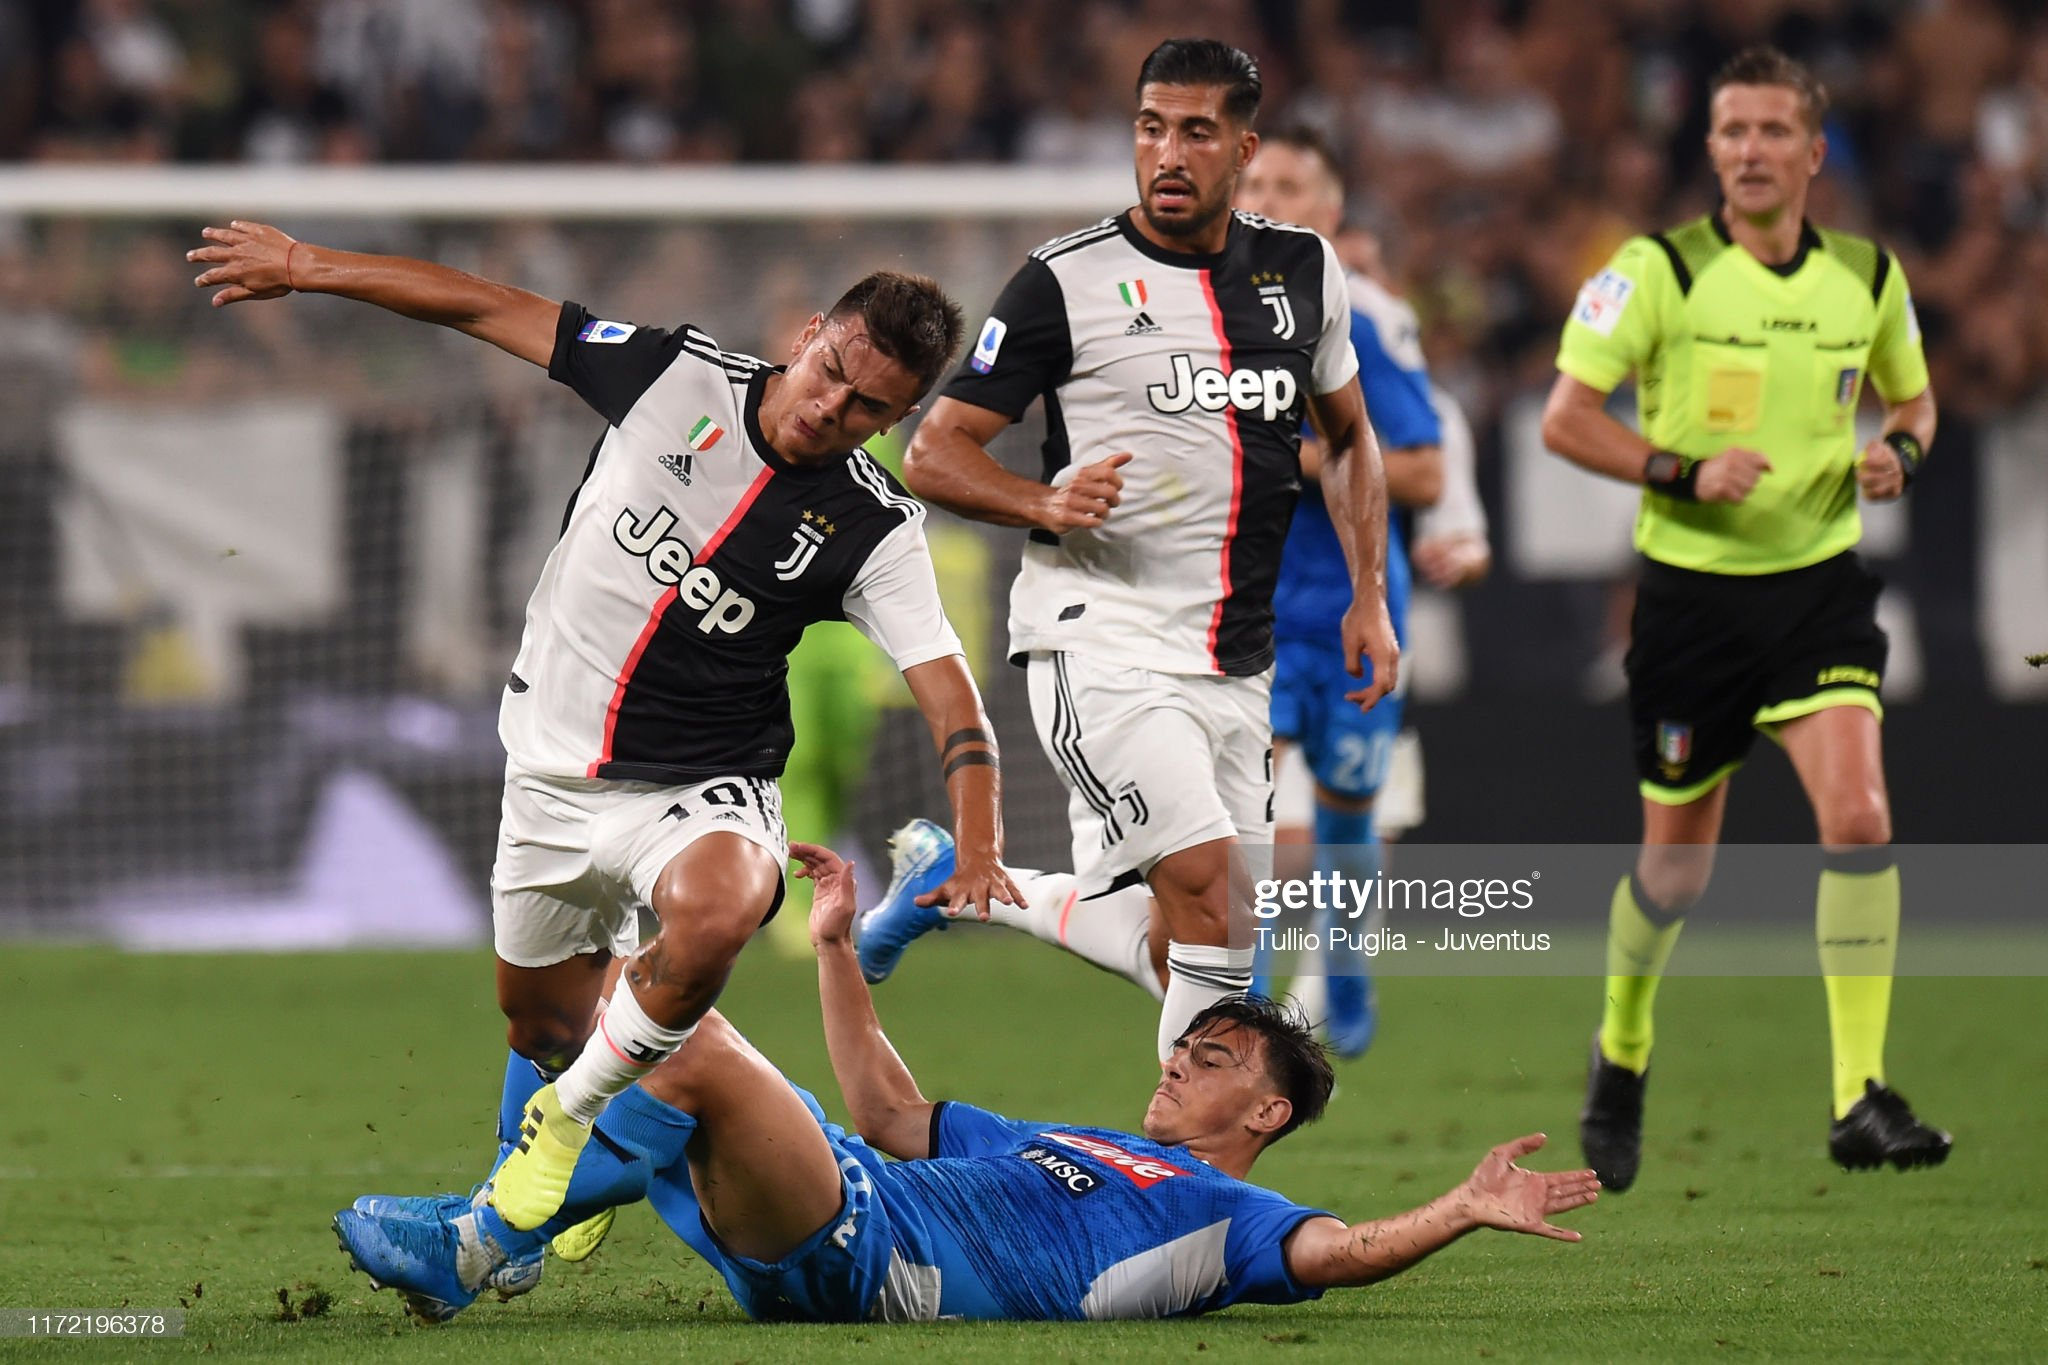 Napoli v Juventus preview, prediction and odds